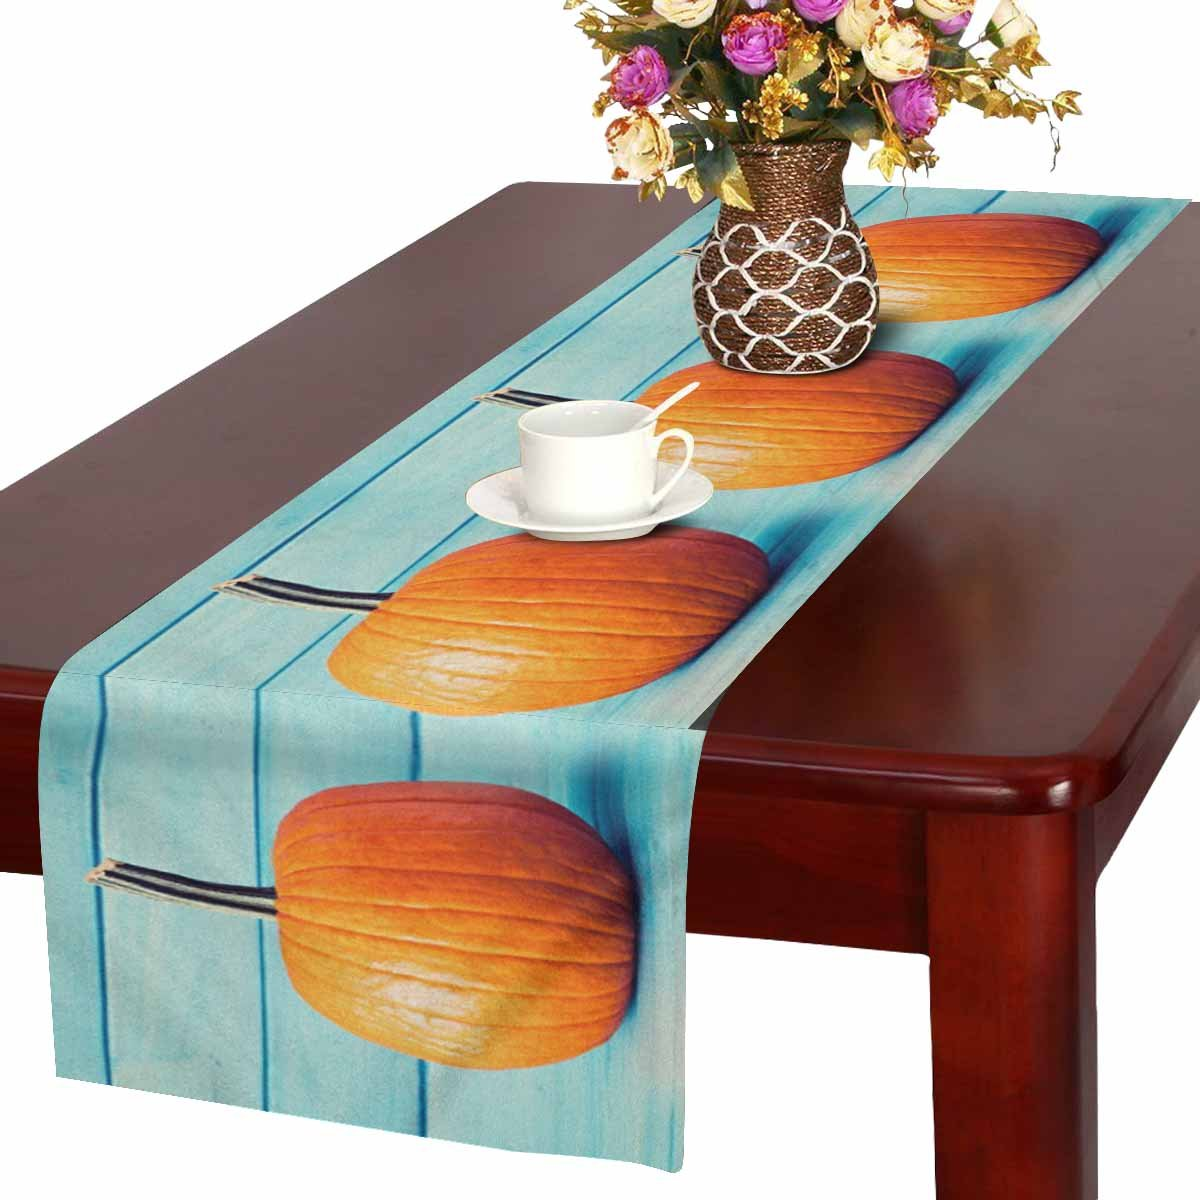 InterestPrint Halloween Decoration Pumpkin over Turquoise Colored Wood Table Runner Linen & Cotton Cloth Placemat Home Decor for Wedding Banquet Decoration 16 x 72 Inches by InterestPrint (Image #1)